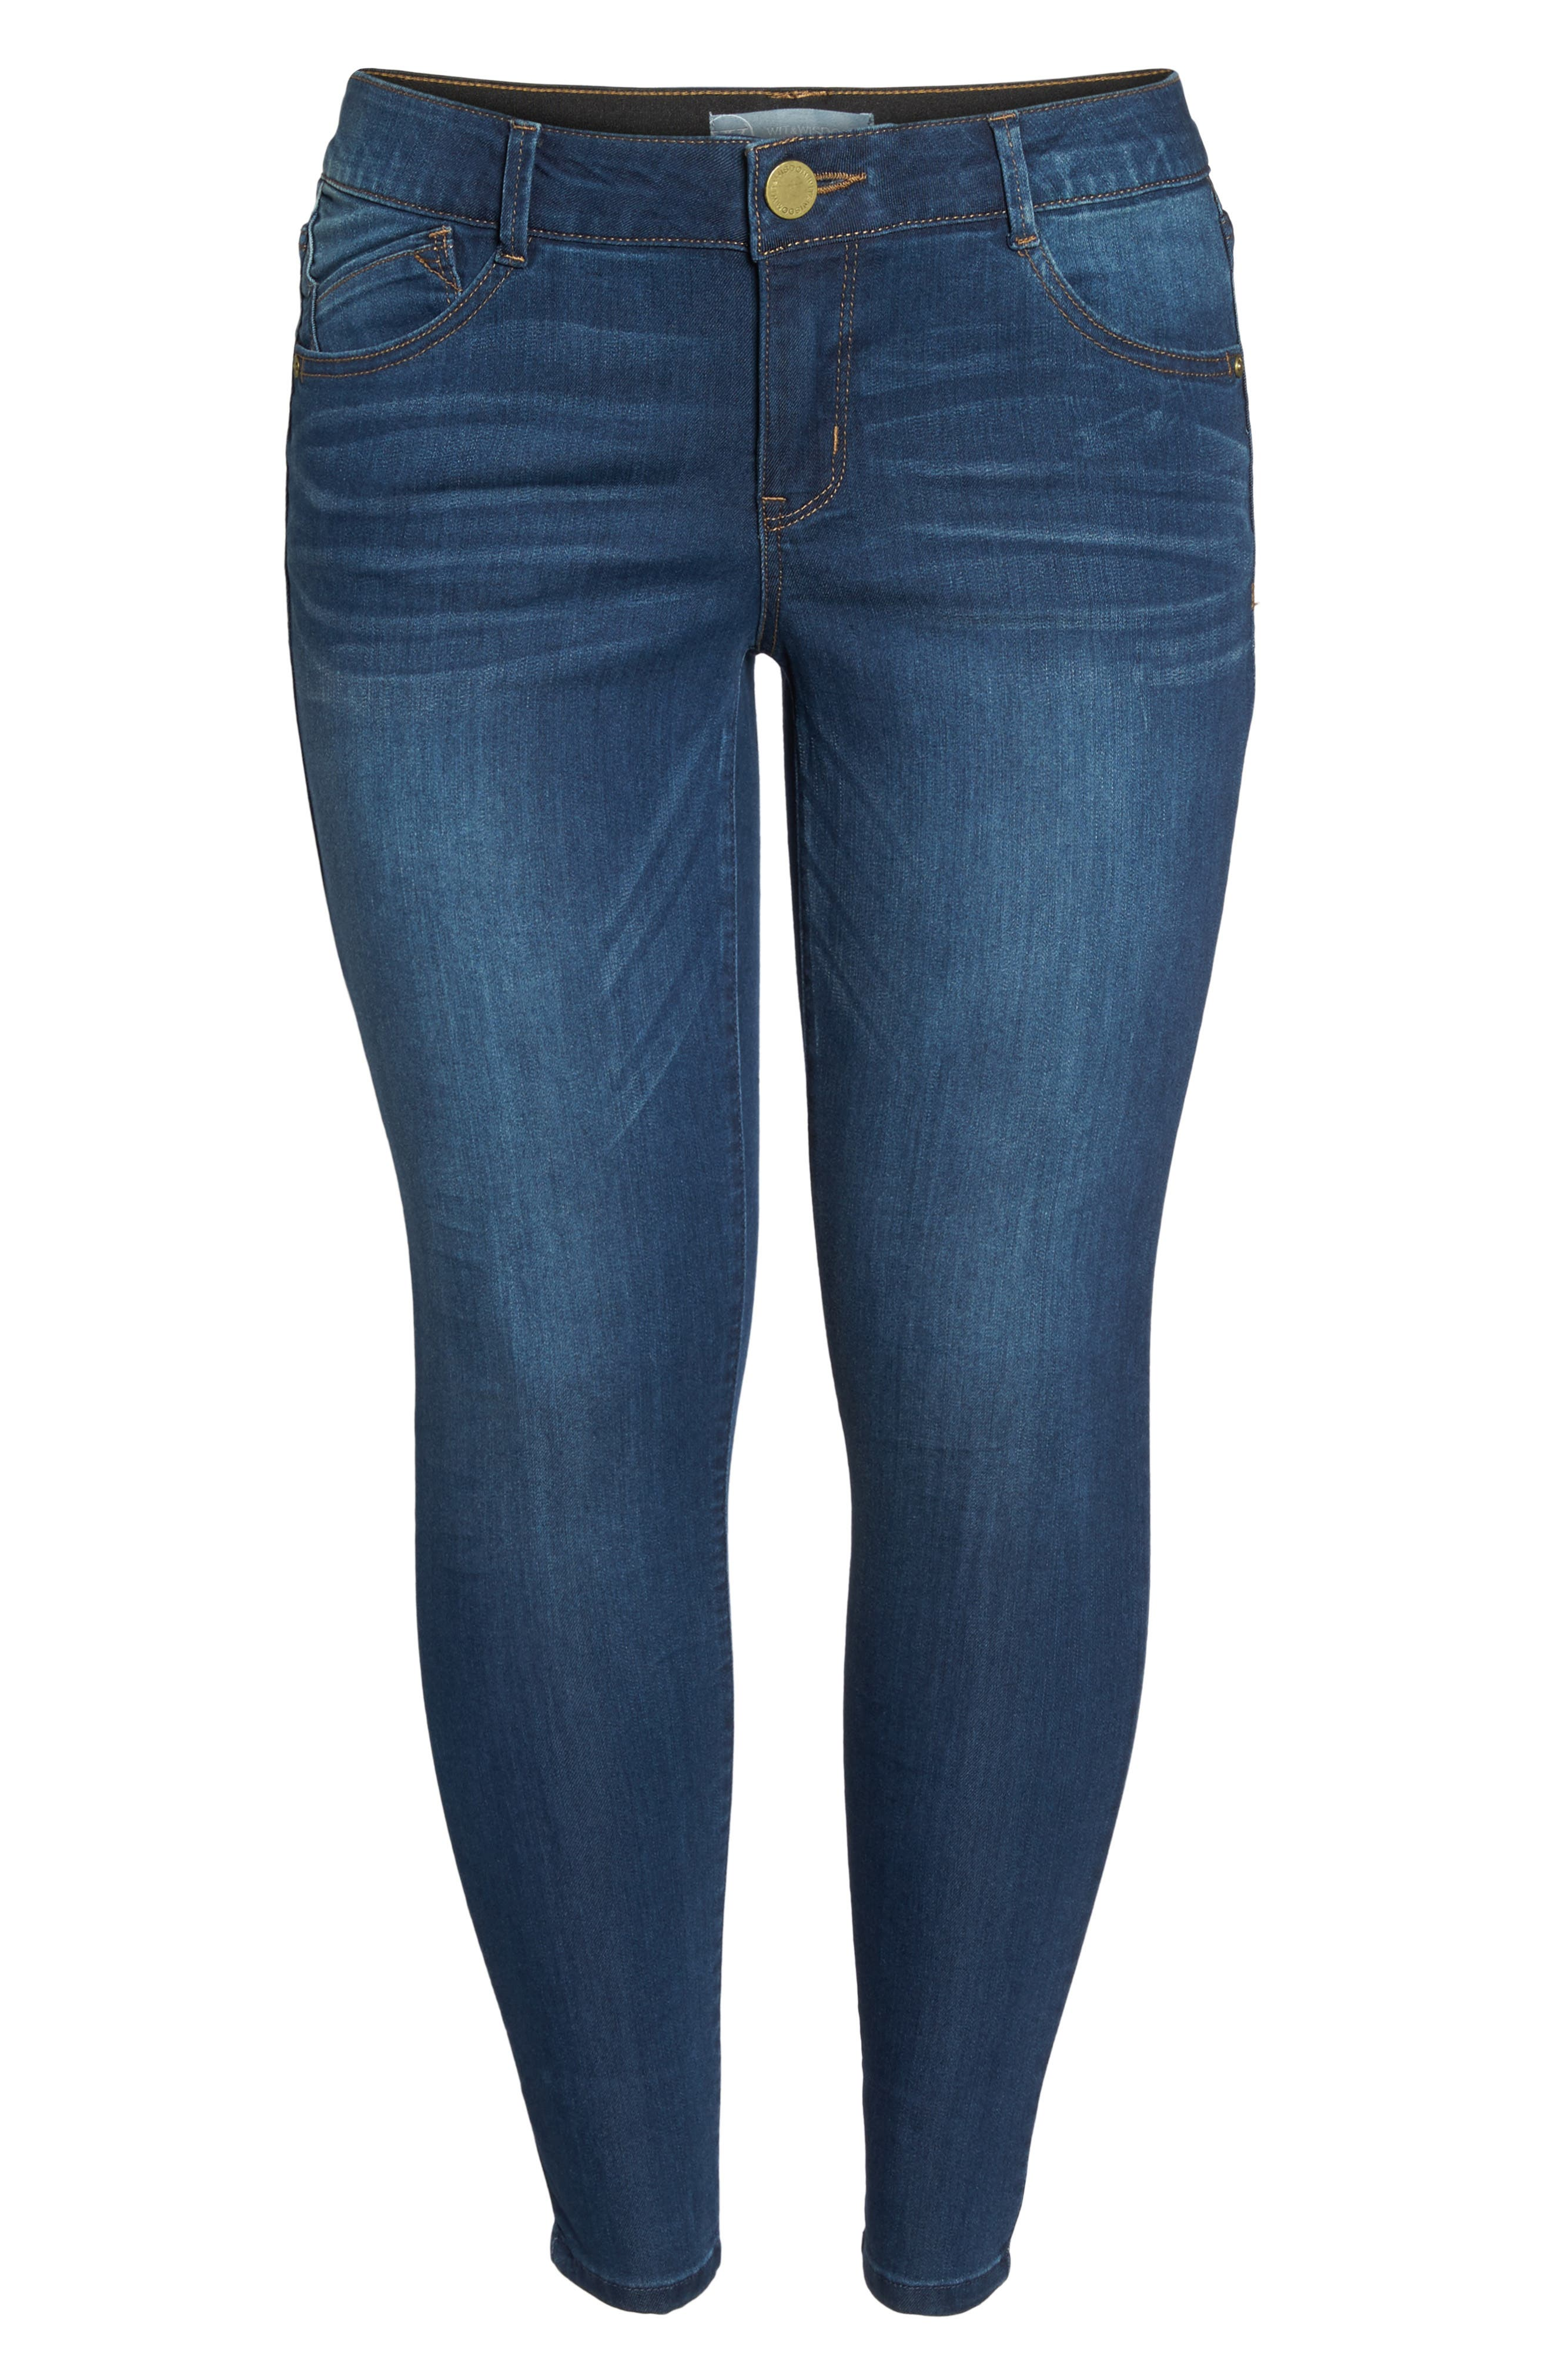 Ab-solution Skinny Jeans,                             Alternate thumbnail 7, color,                             420